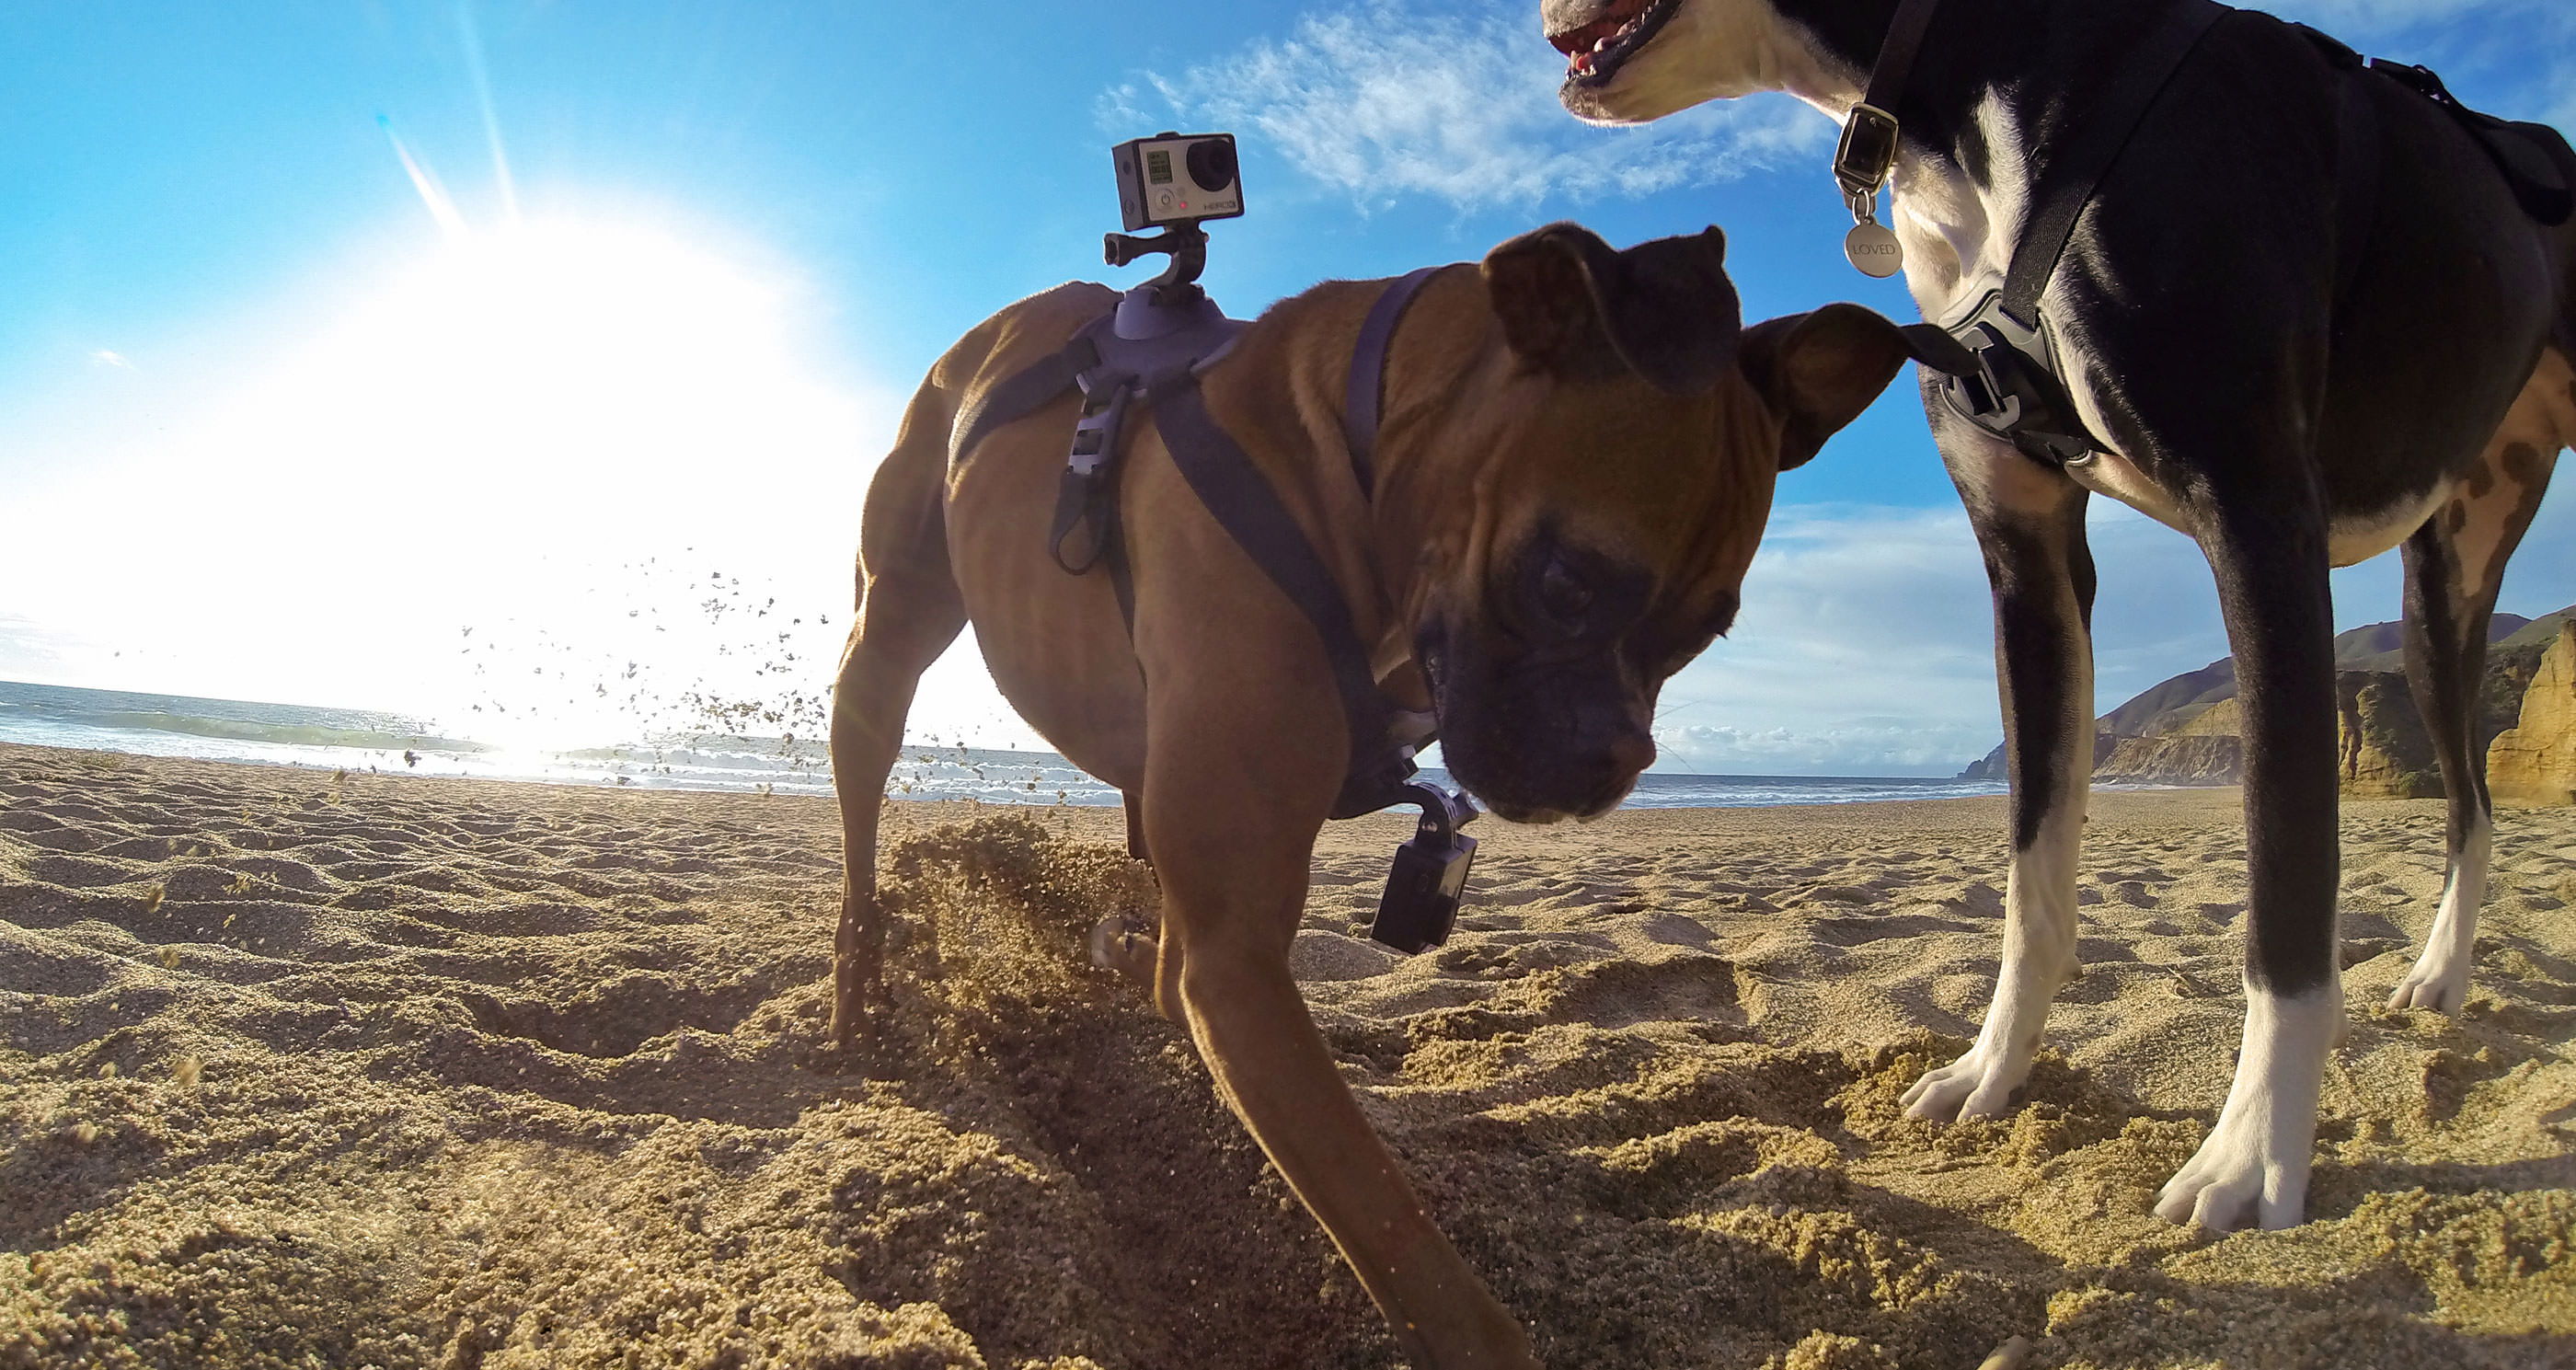 GoPro to lay off 270 workers in an effort to cut costs